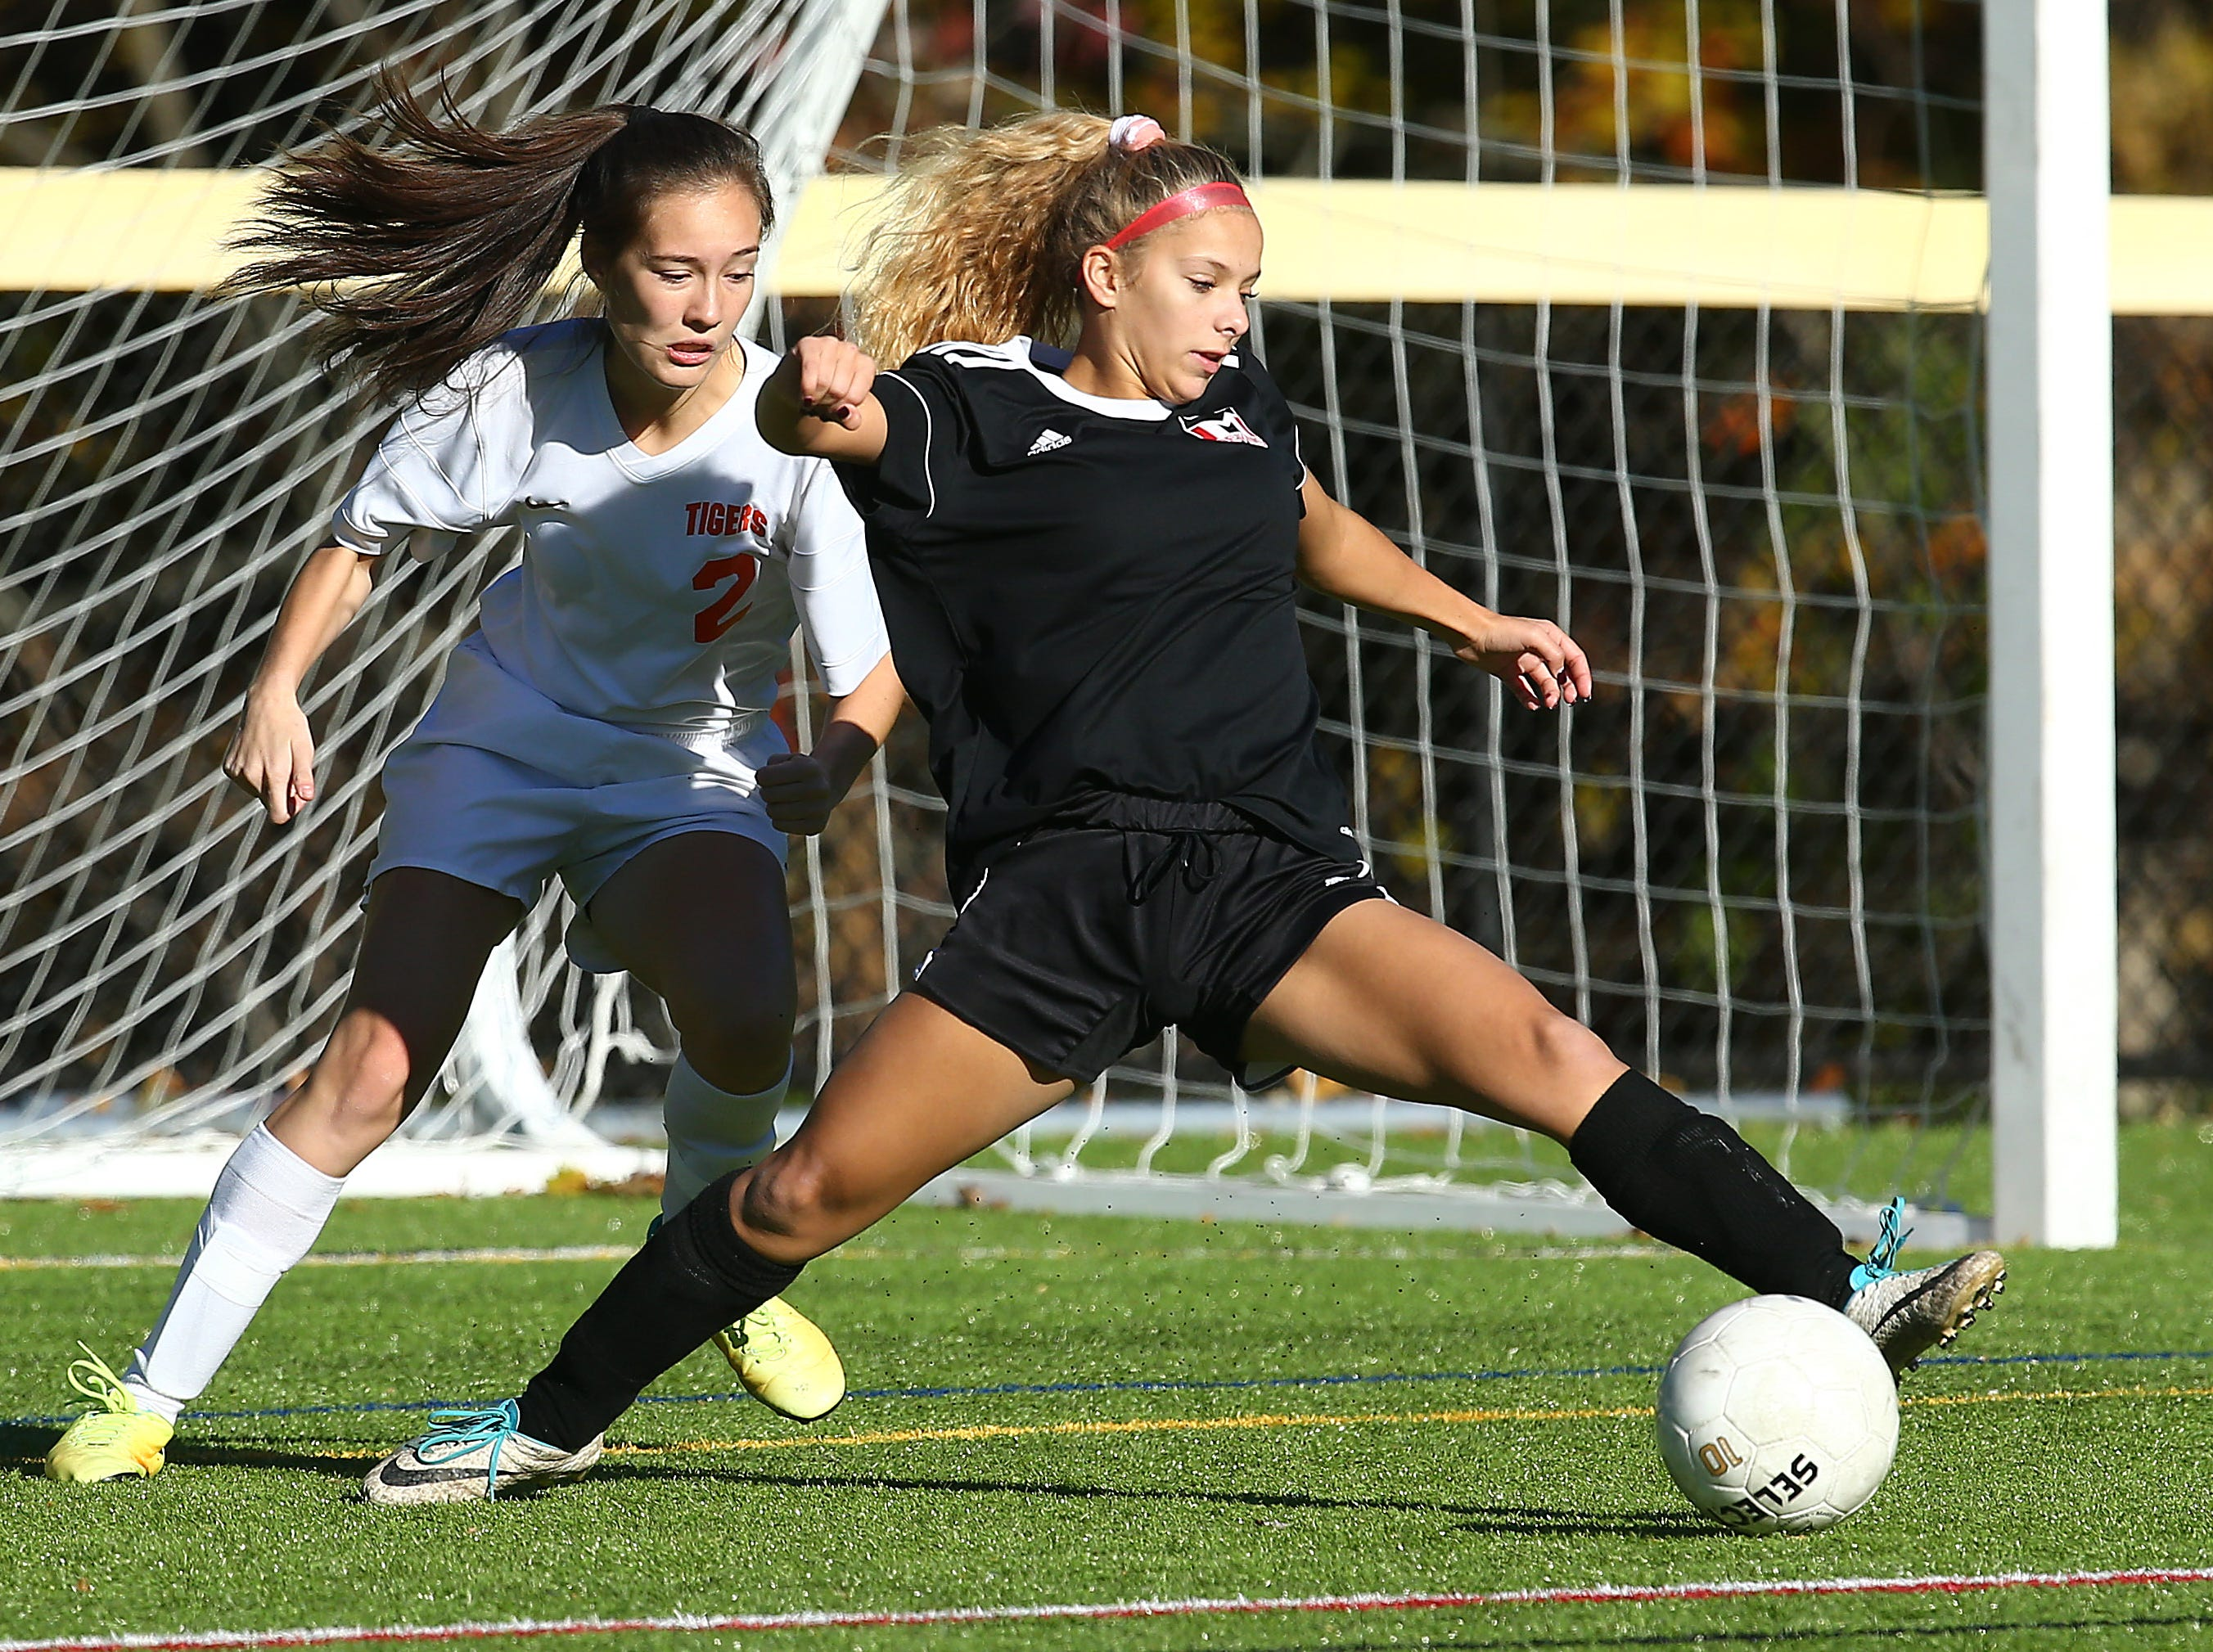 Morris Tech's Julia Gronda tries to control the ball in front of the Dover goal as Manuela Ospina defends during their NJSIAA North 2 Group II opening round girls soccer match at Veterans Memorial Park. October 30, 2018, Denville, NJ